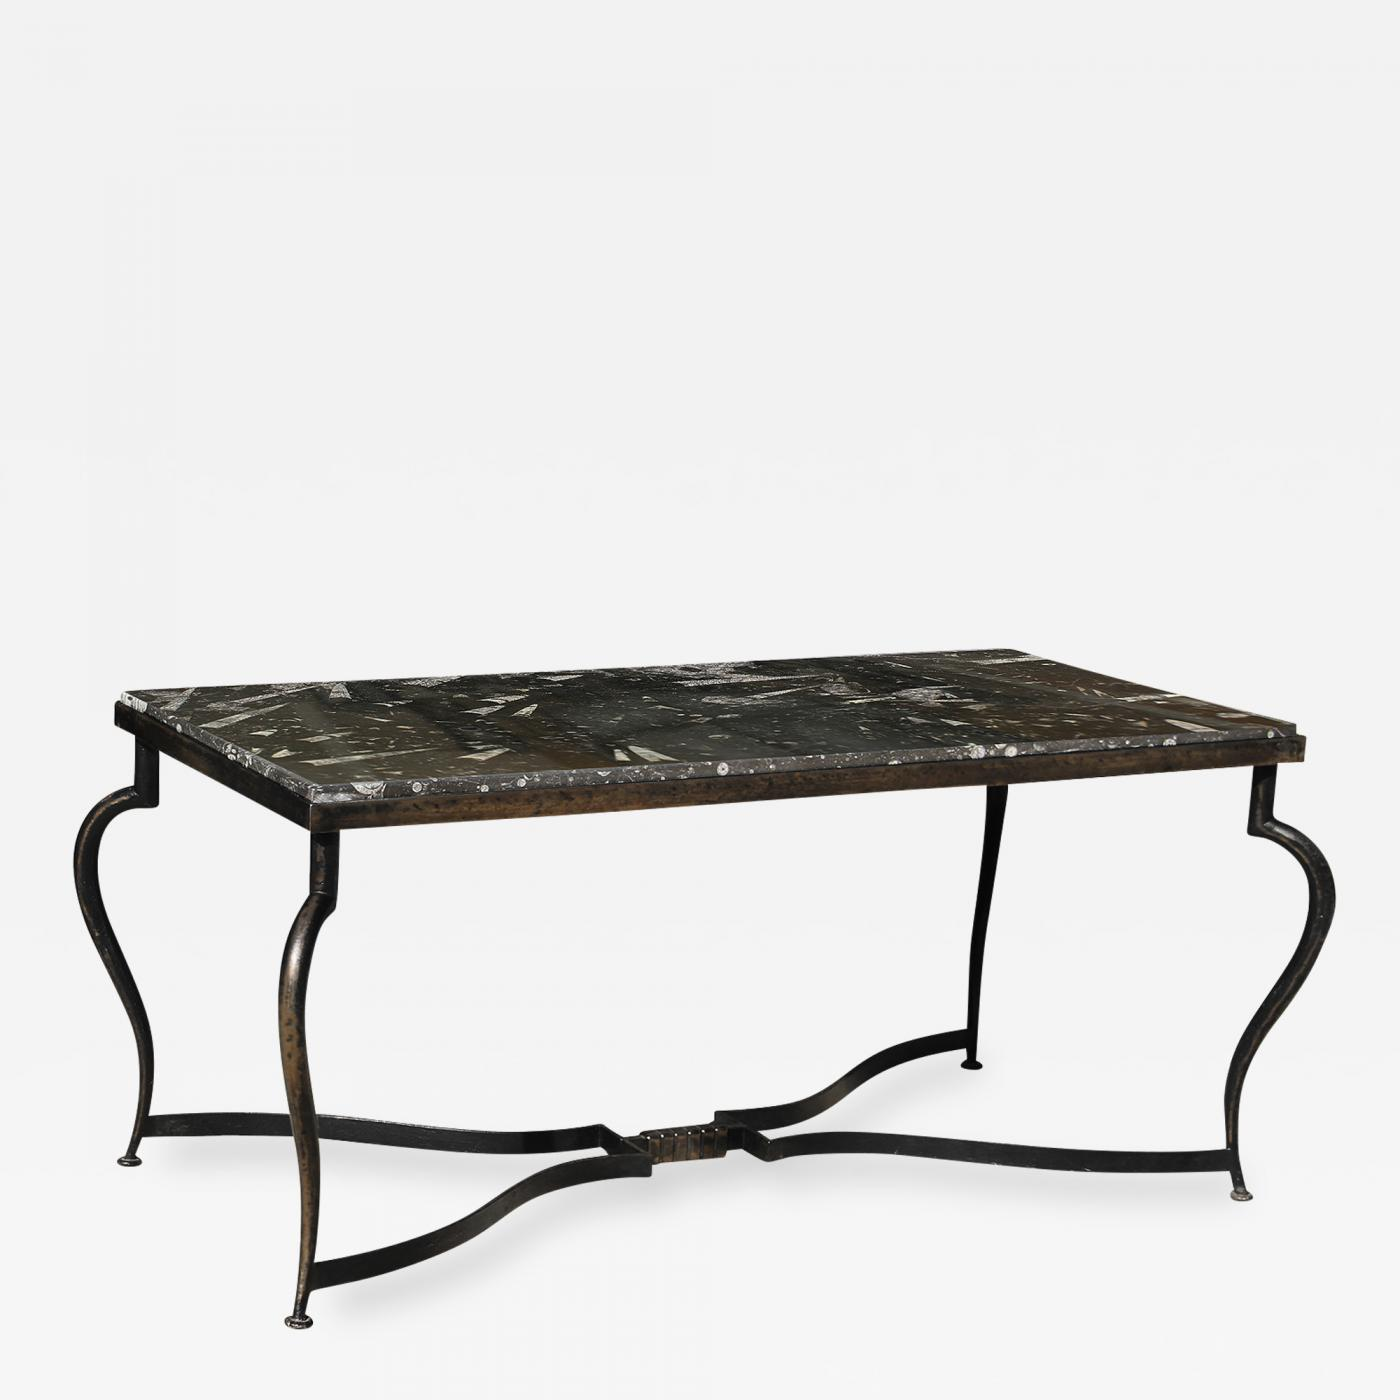 Ordinaire Listings / Furniture / Tables / Coffee Tables · Wrought Iron Coffee Table  With Black ...